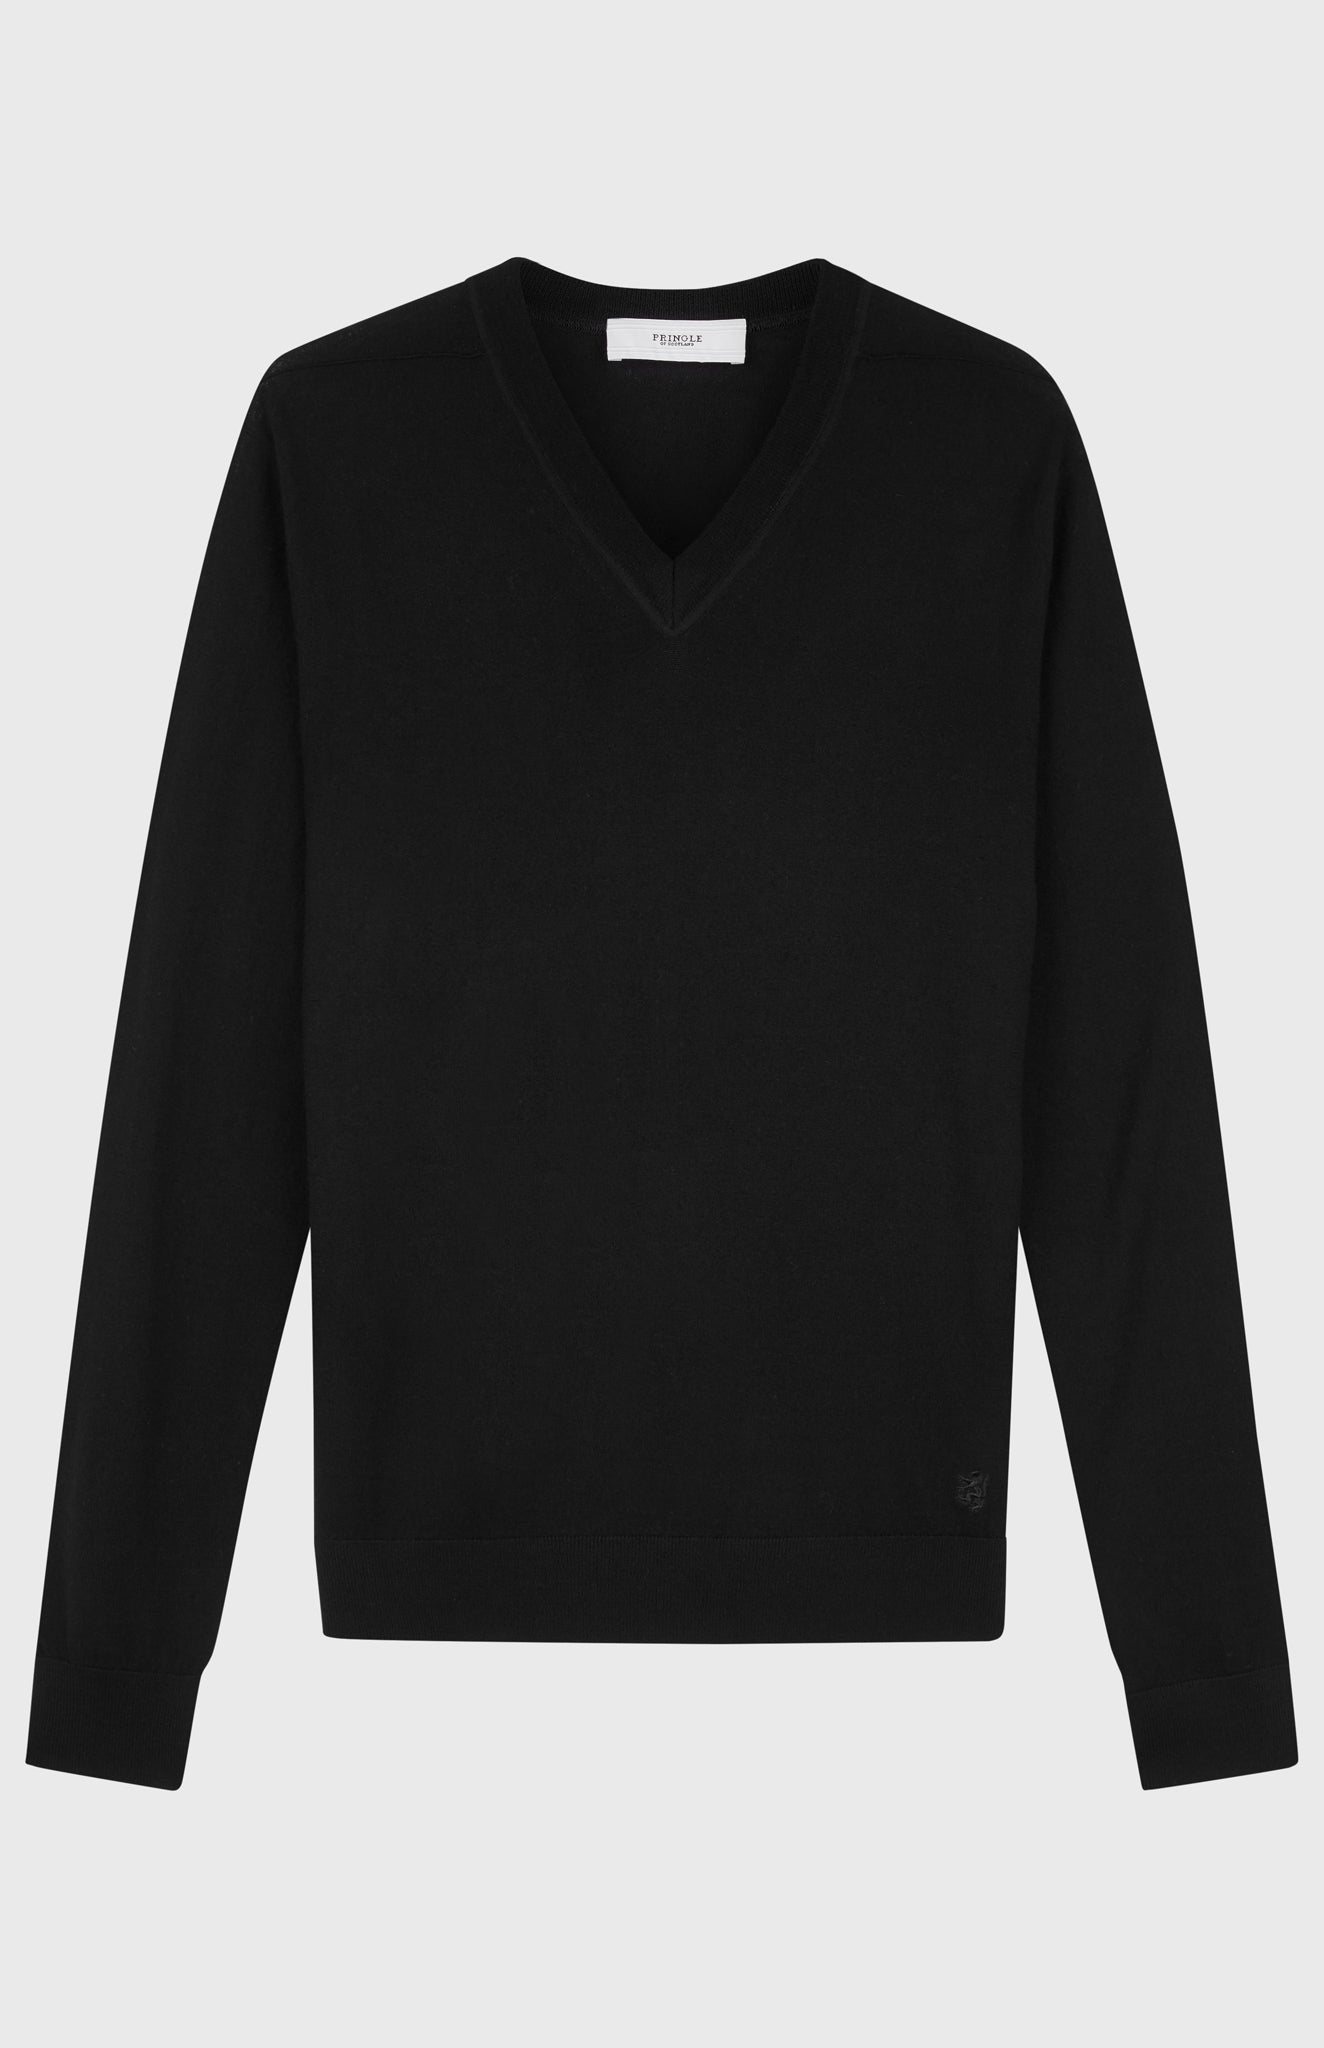 Men's V-neck Merino Wool Jumper In Black